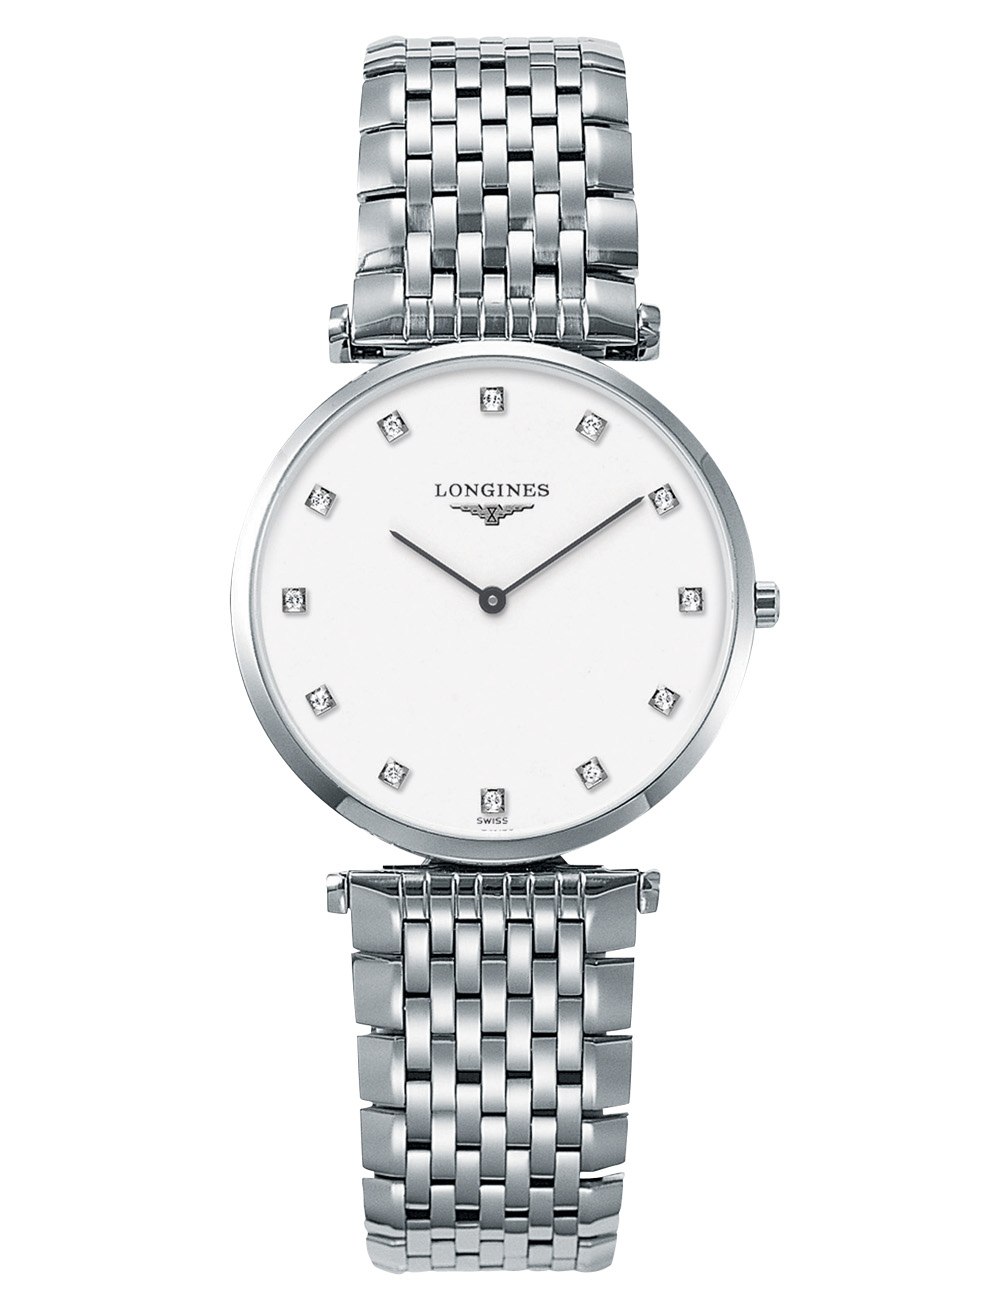 la-grande-classique-de-longines-replica-watches